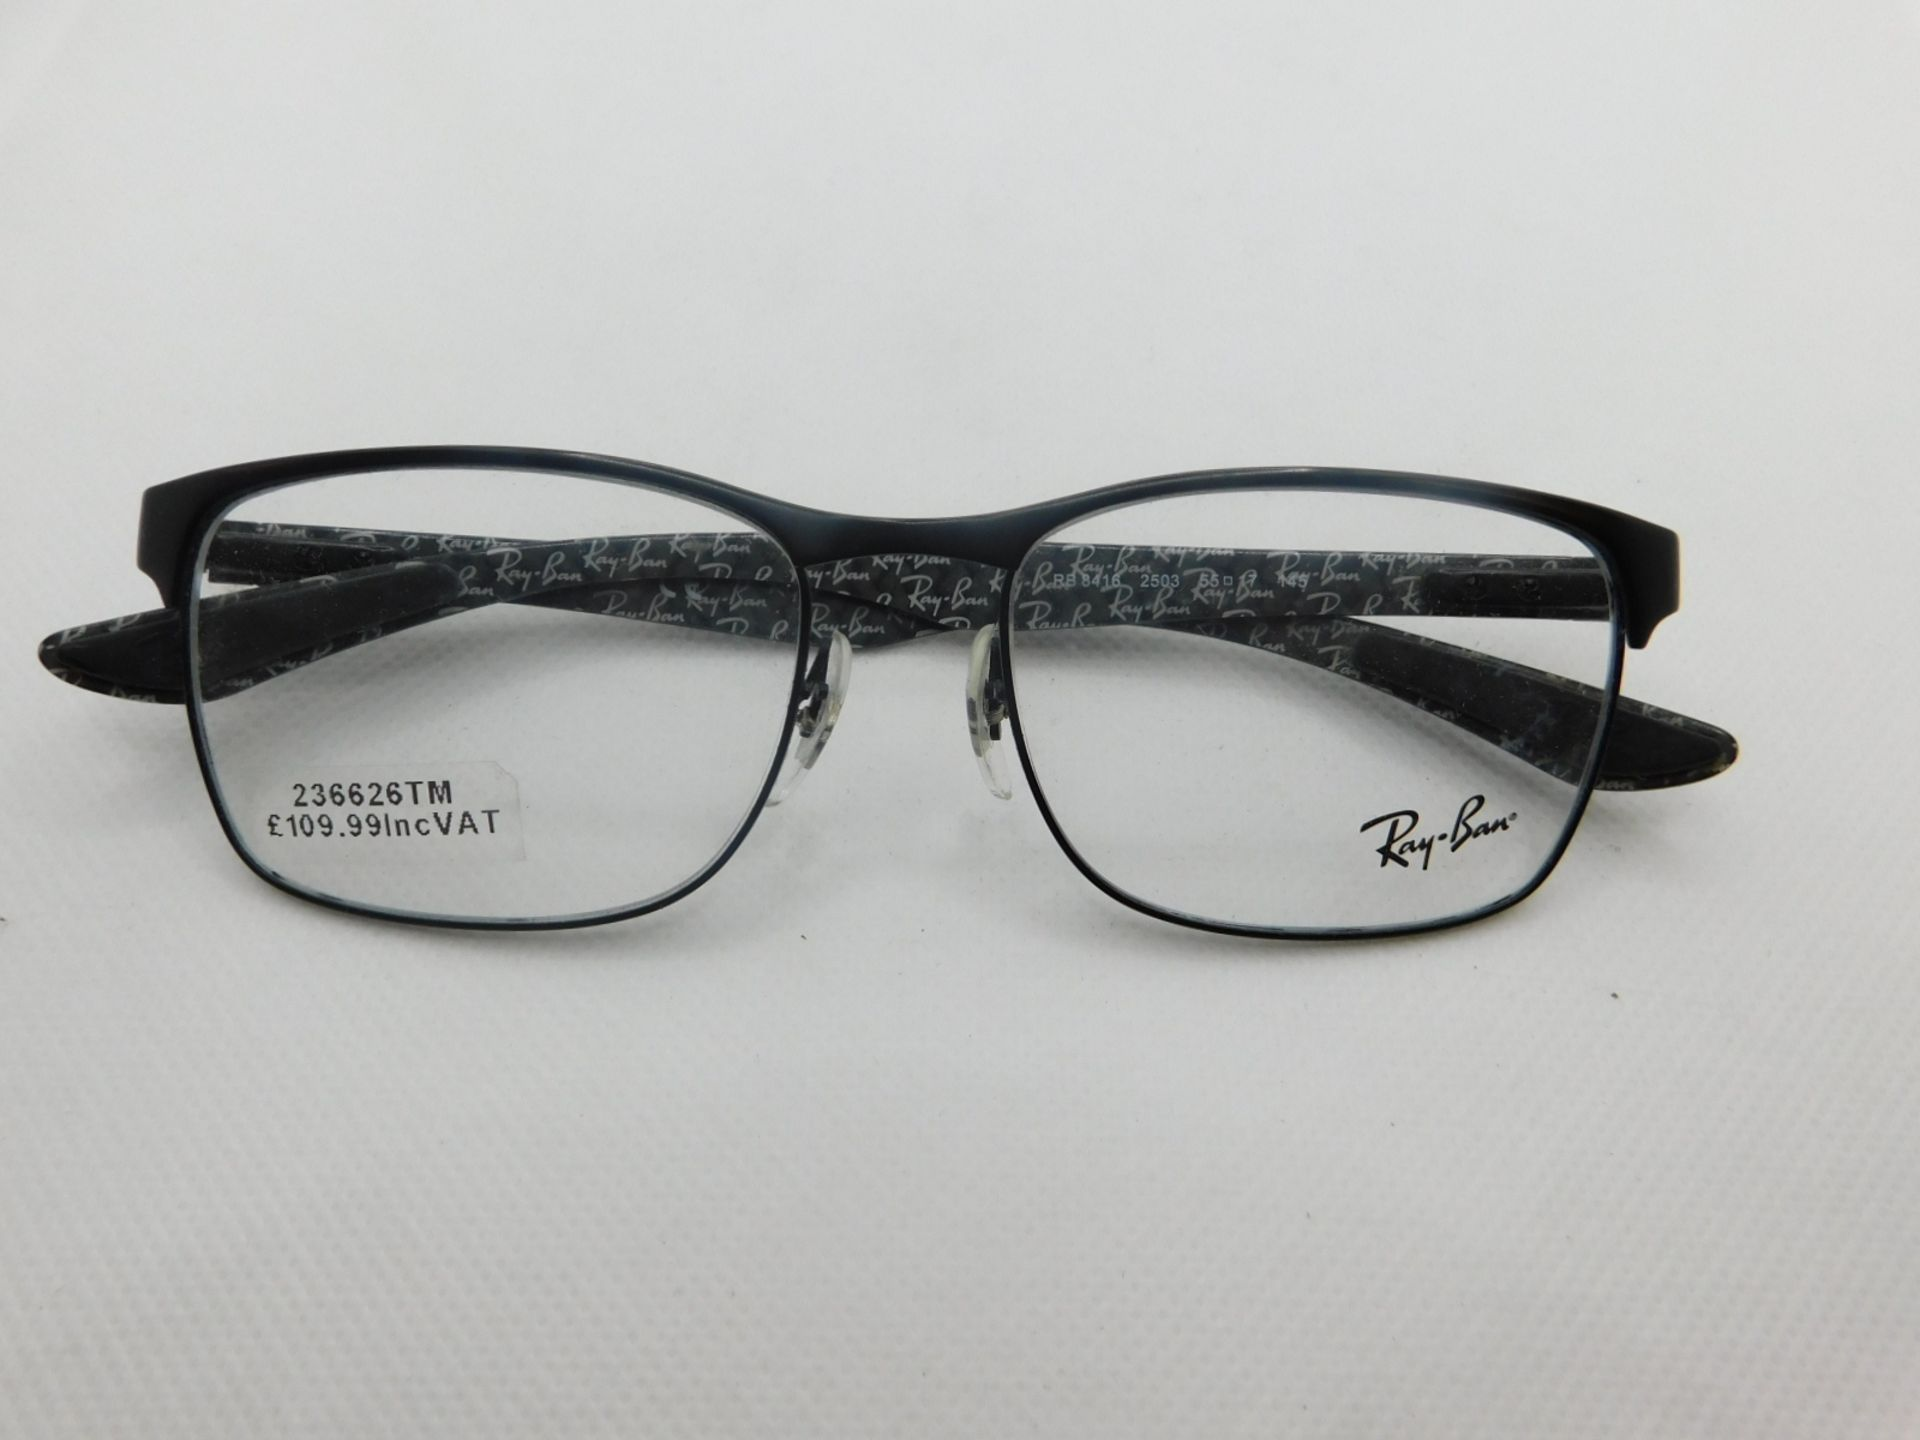 1 PAIR OF RAY-BAN GLASSES FRAME MODEL RB8416 RRP £119